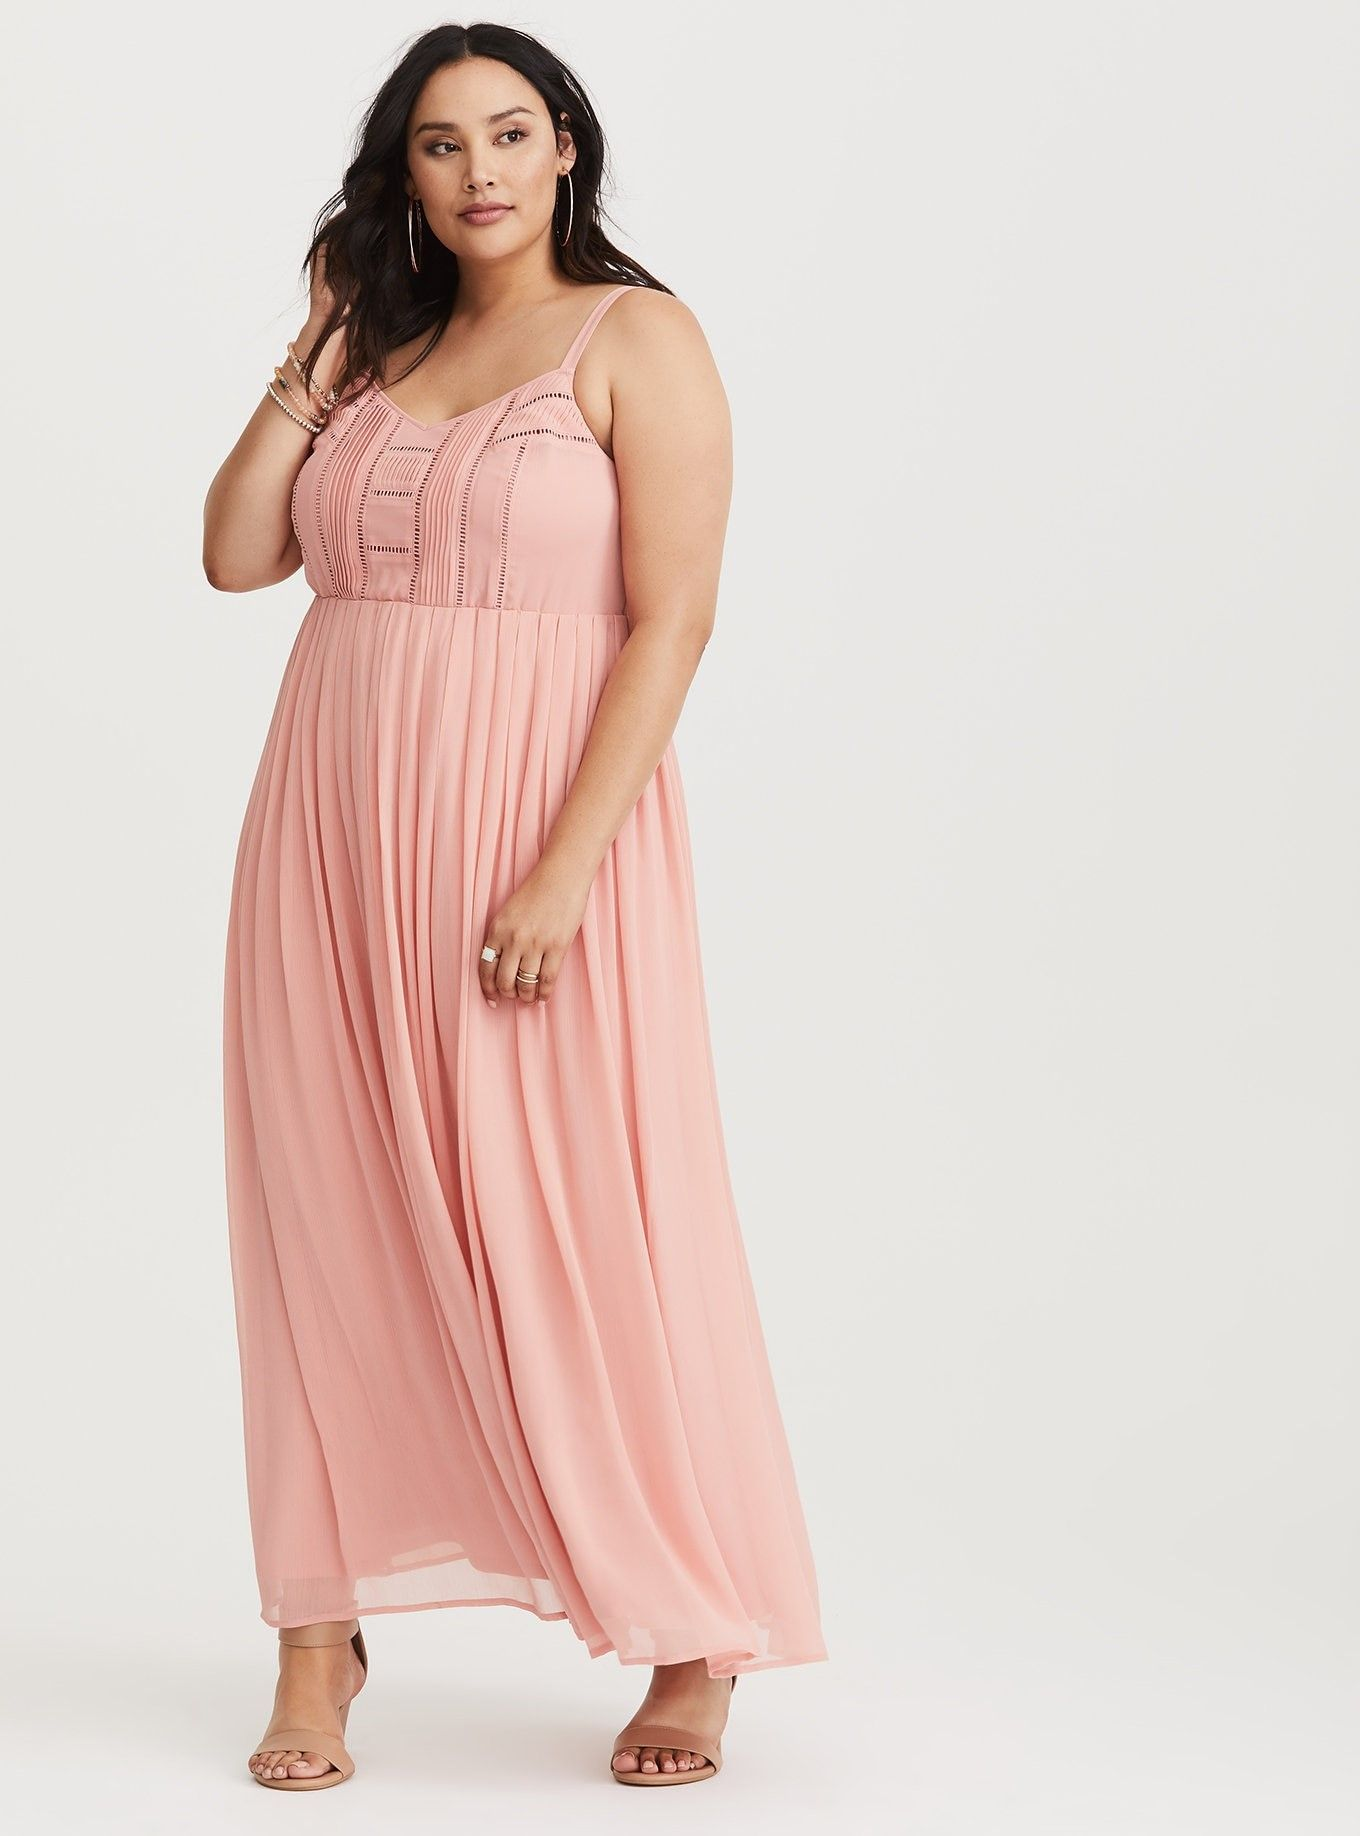 7562e55216a Blush Pleat   Eyelet Chiffon Maxi Dress - Ethereal chiffon makes up a  flowing maxi dress that showcases eyelet cutouts and precise pleating  details.